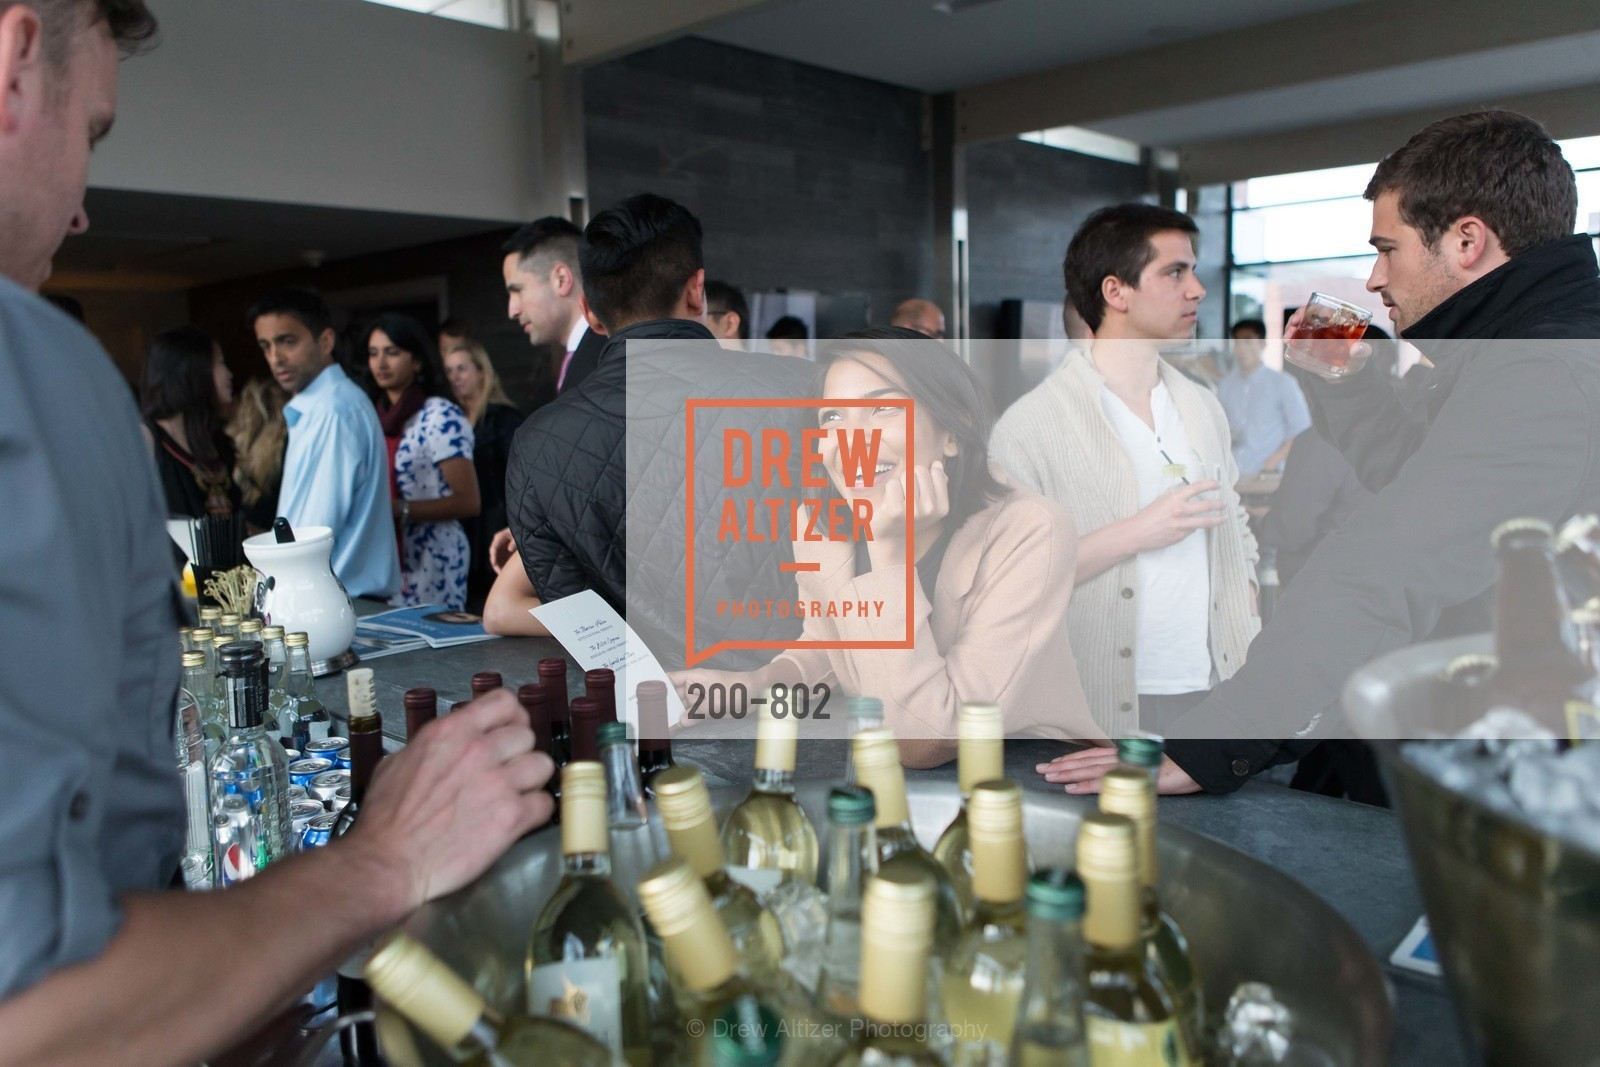 Atmosphere, MR PORTER Celebrate The San Francisco Issue of The Journal, US, April 23rd, 2015,Drew Altizer, Drew Altizer Photography, full-service agency, private events, San Francisco photographer, photographer california